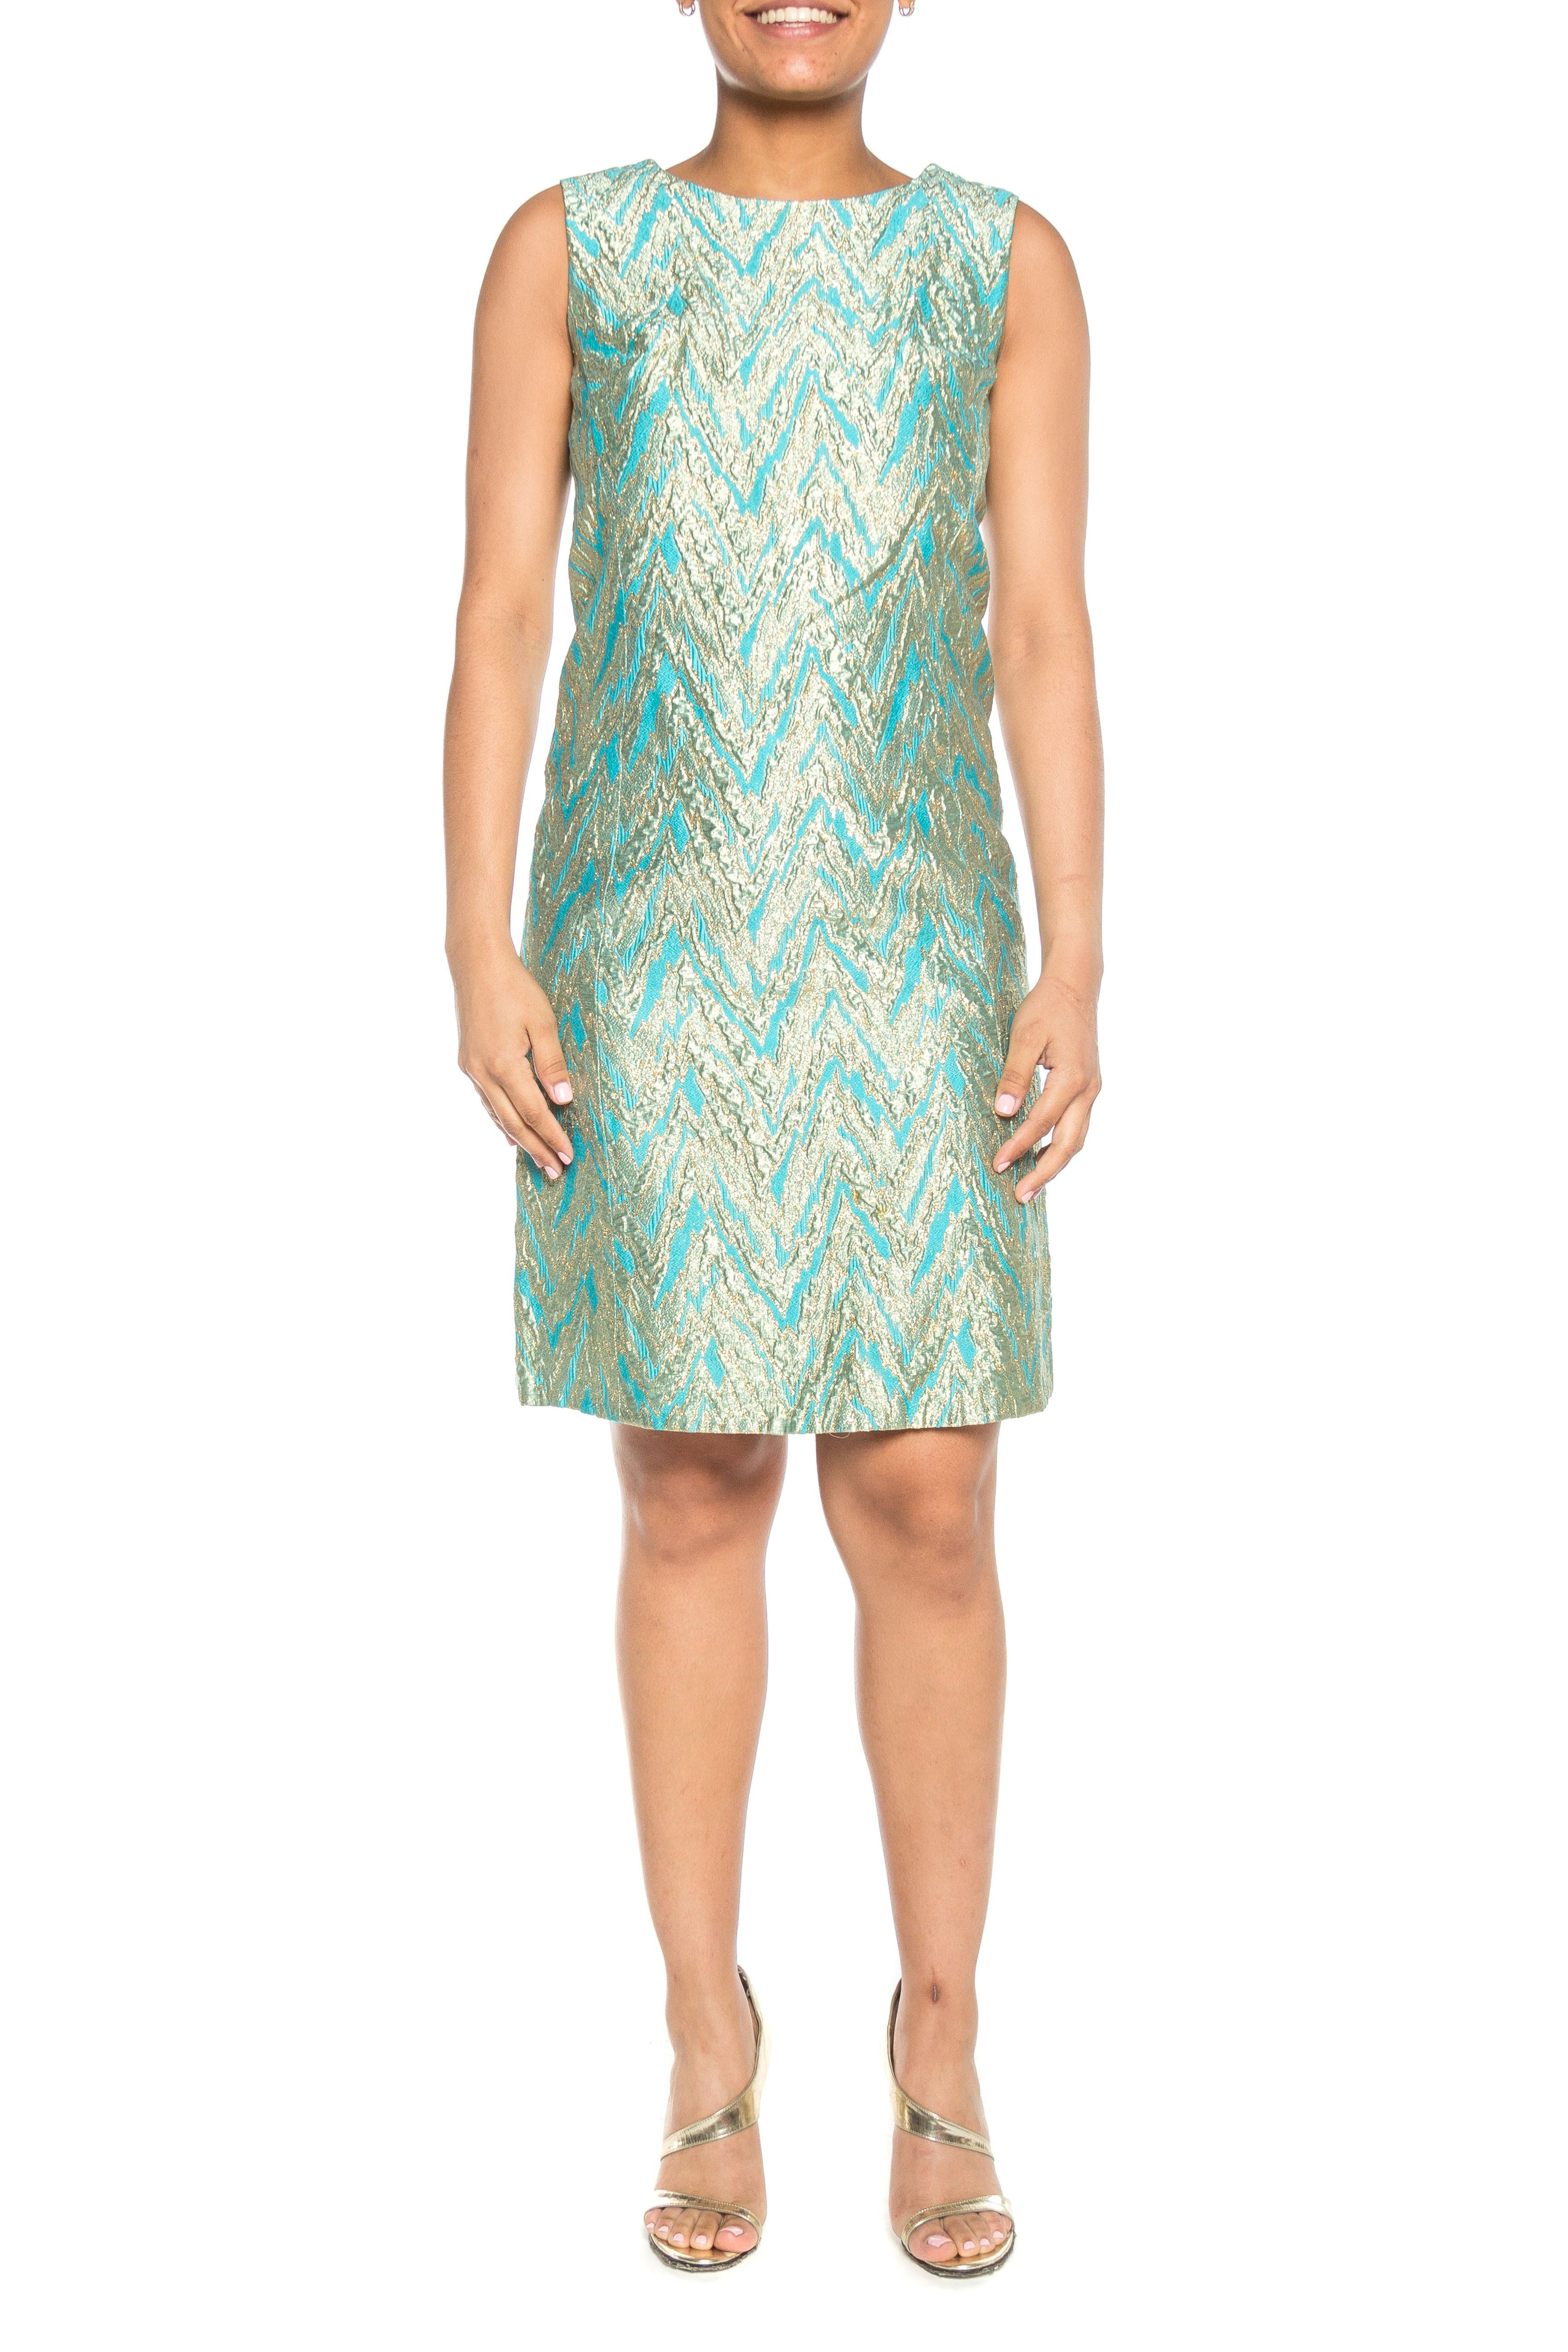 Gold And Turquoise Brocade 60s Mod Cocktail Shift Dress Shift Dress Dresses Vintage Dresses [ 5184 x 3456 Pixel ]